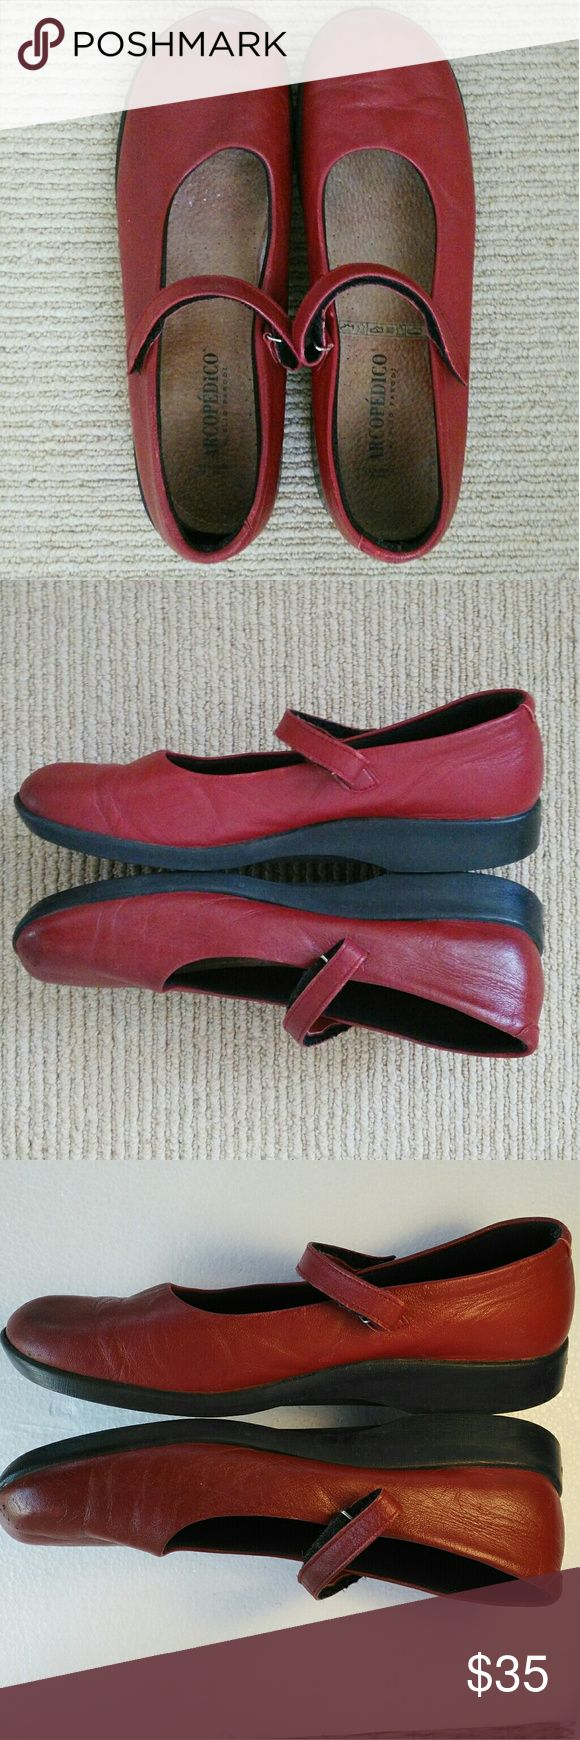 Cute Red Arcopedico Mary Jane's Sz 9 Nearly new red leather. Signature comfort. Feather light! Arcopedico Shoes Flats & Loafers